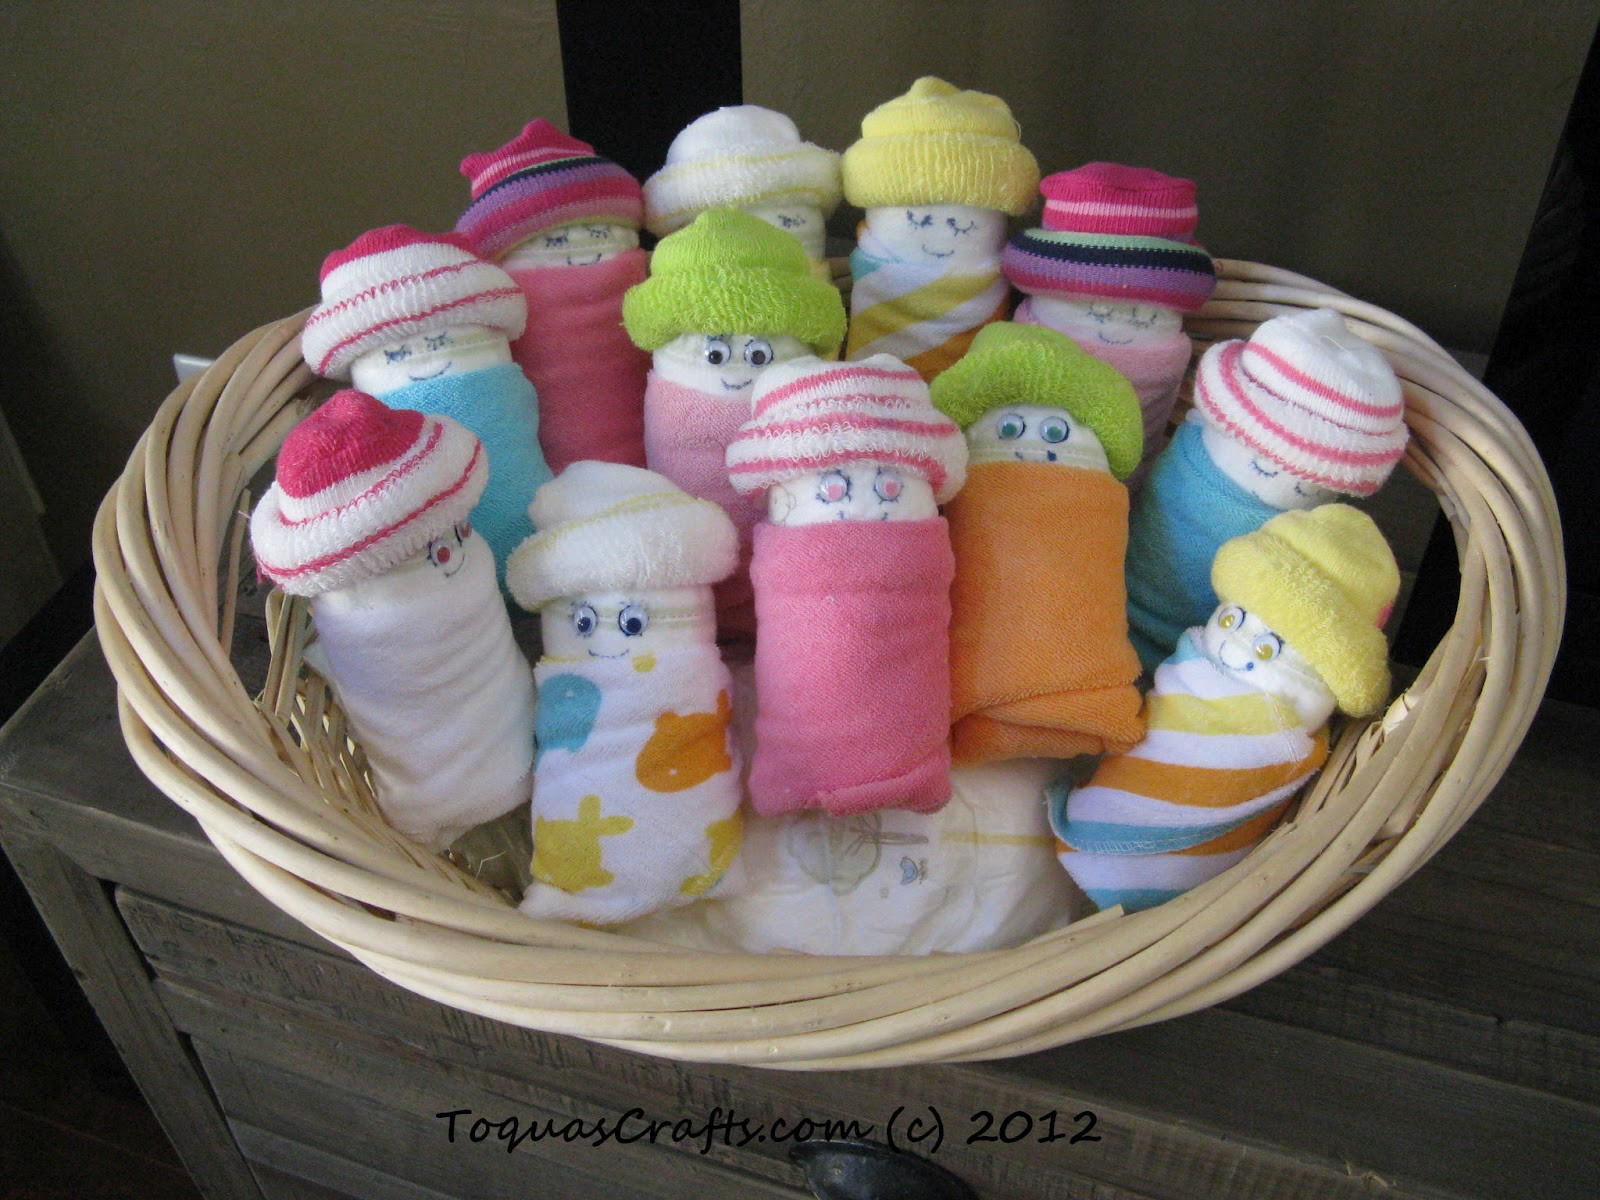 Craft Ideas For Baby Shower Decorations  Toqua s Crafts Baby Shower